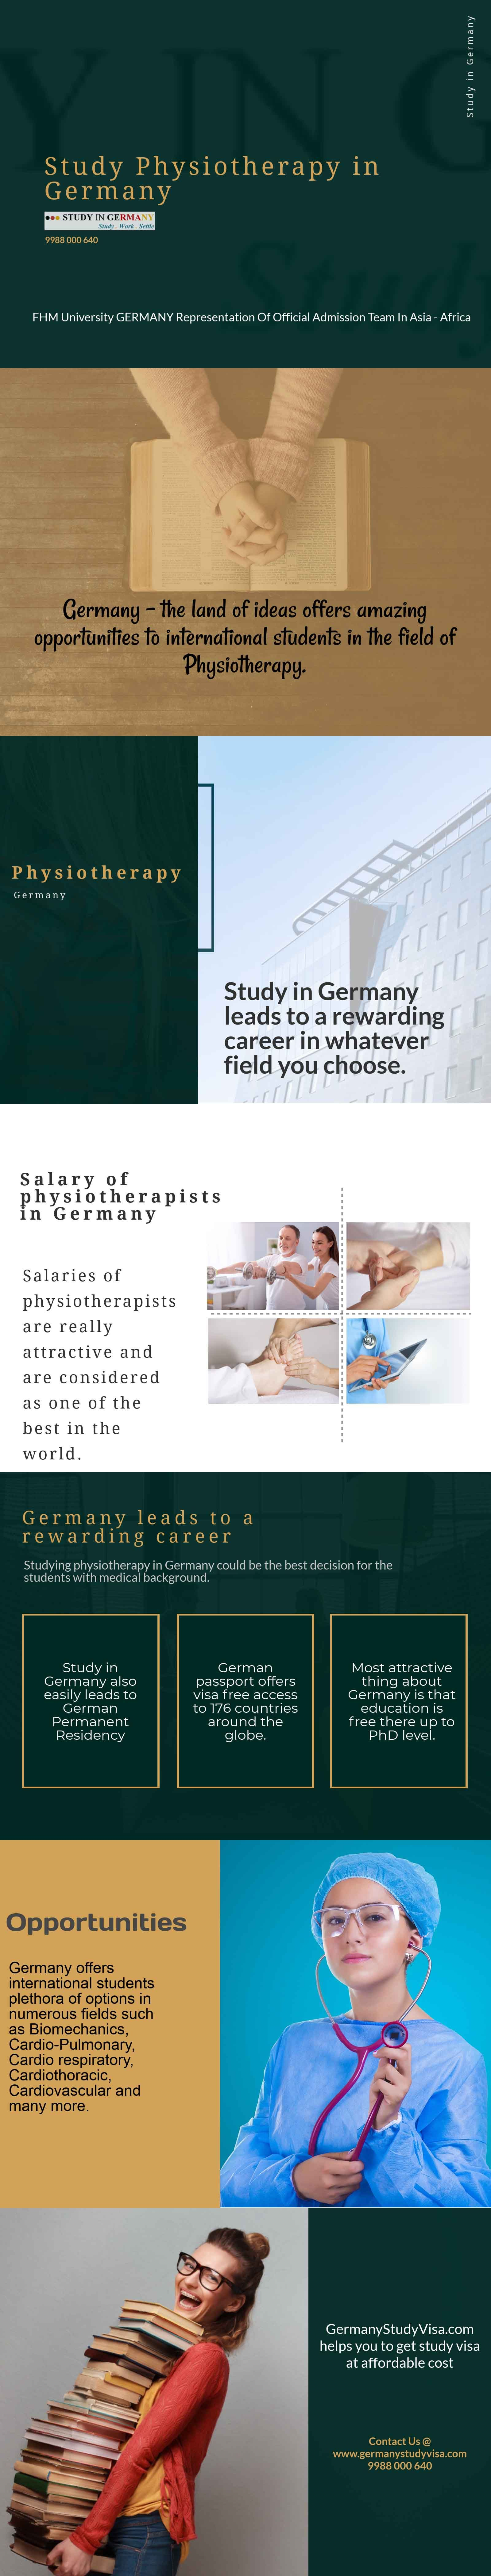 Study Physiotherapy in Germany. (With images